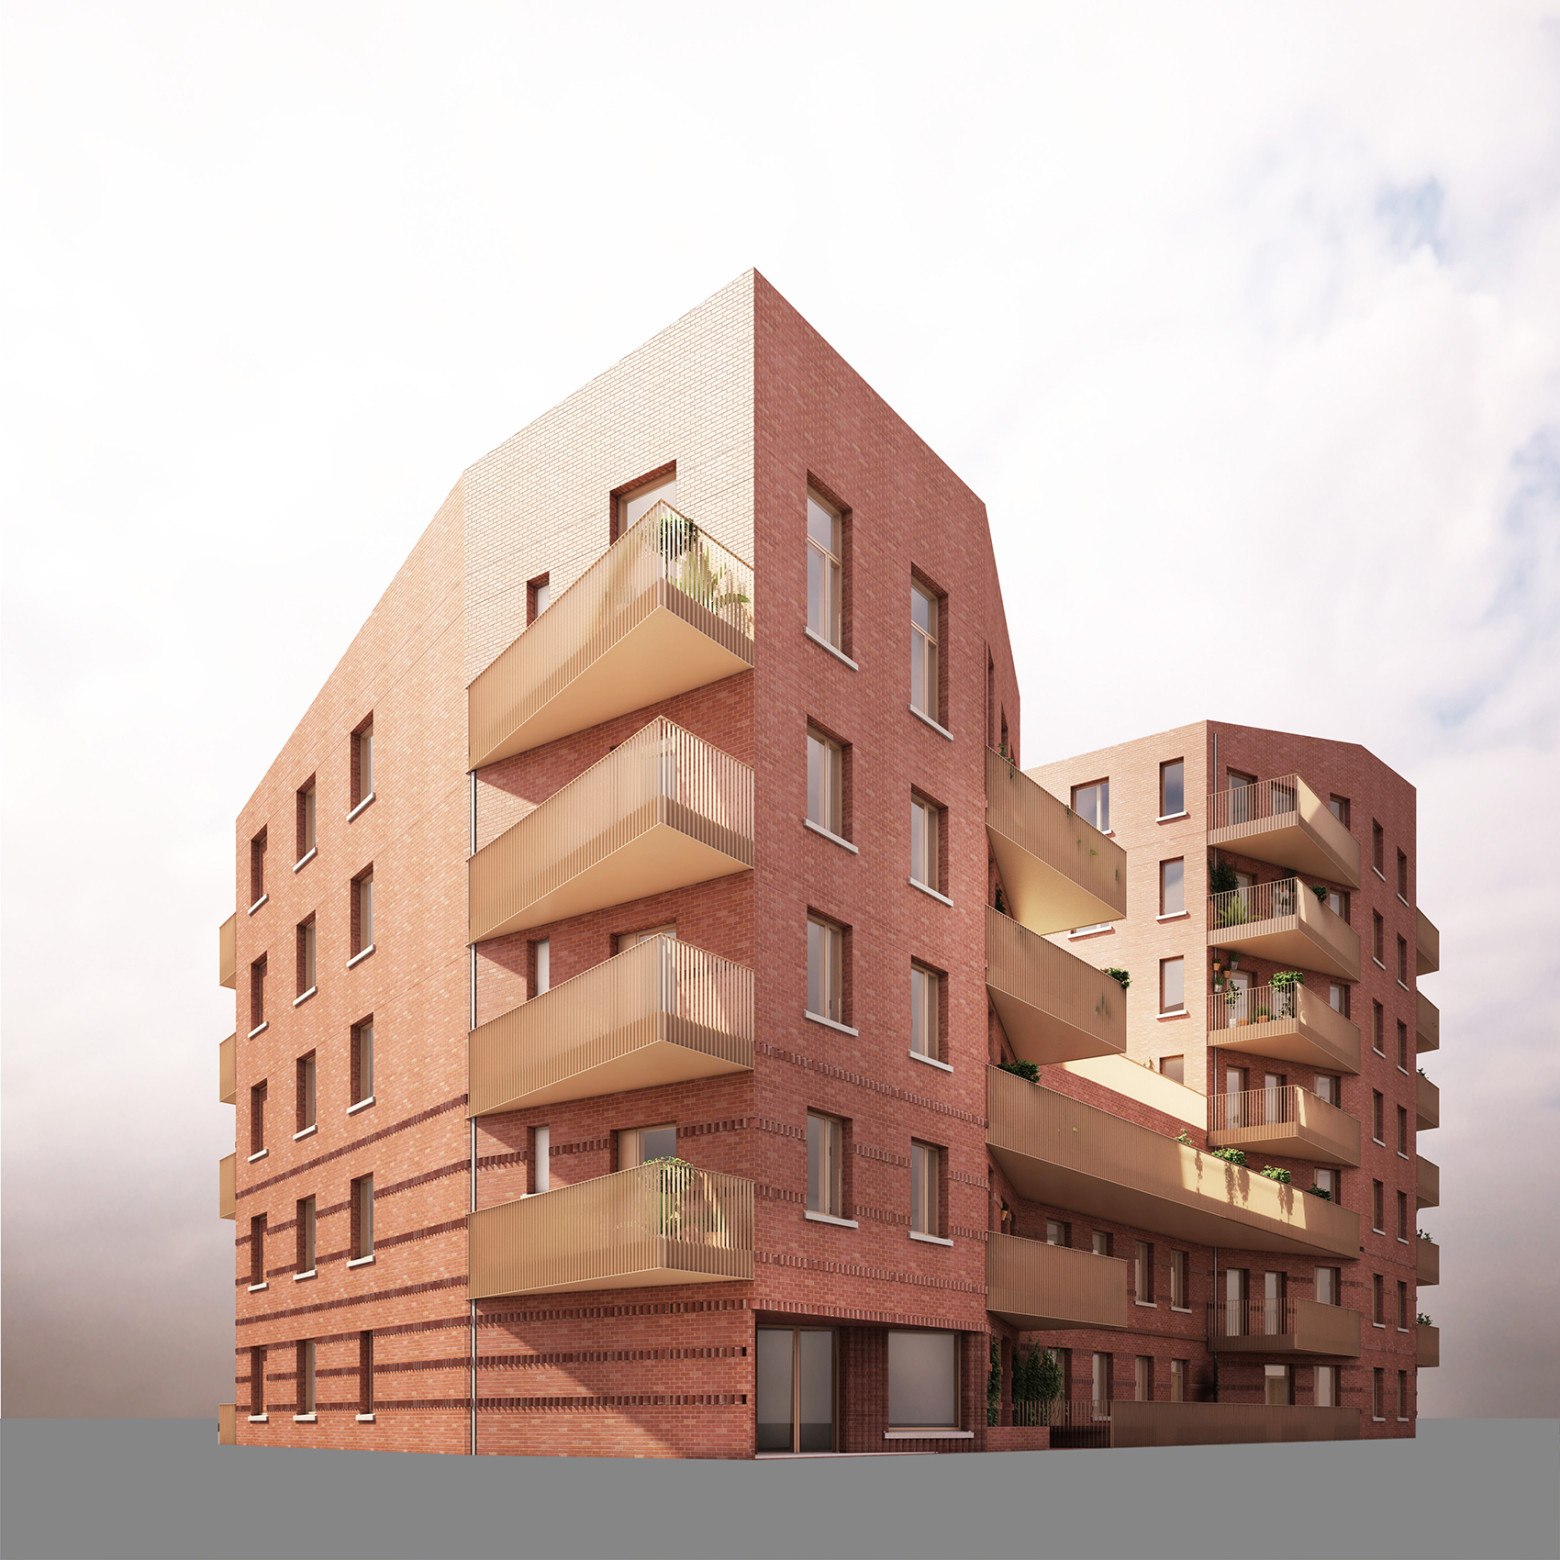 Detailed planning consent for Kipling Estate Garages